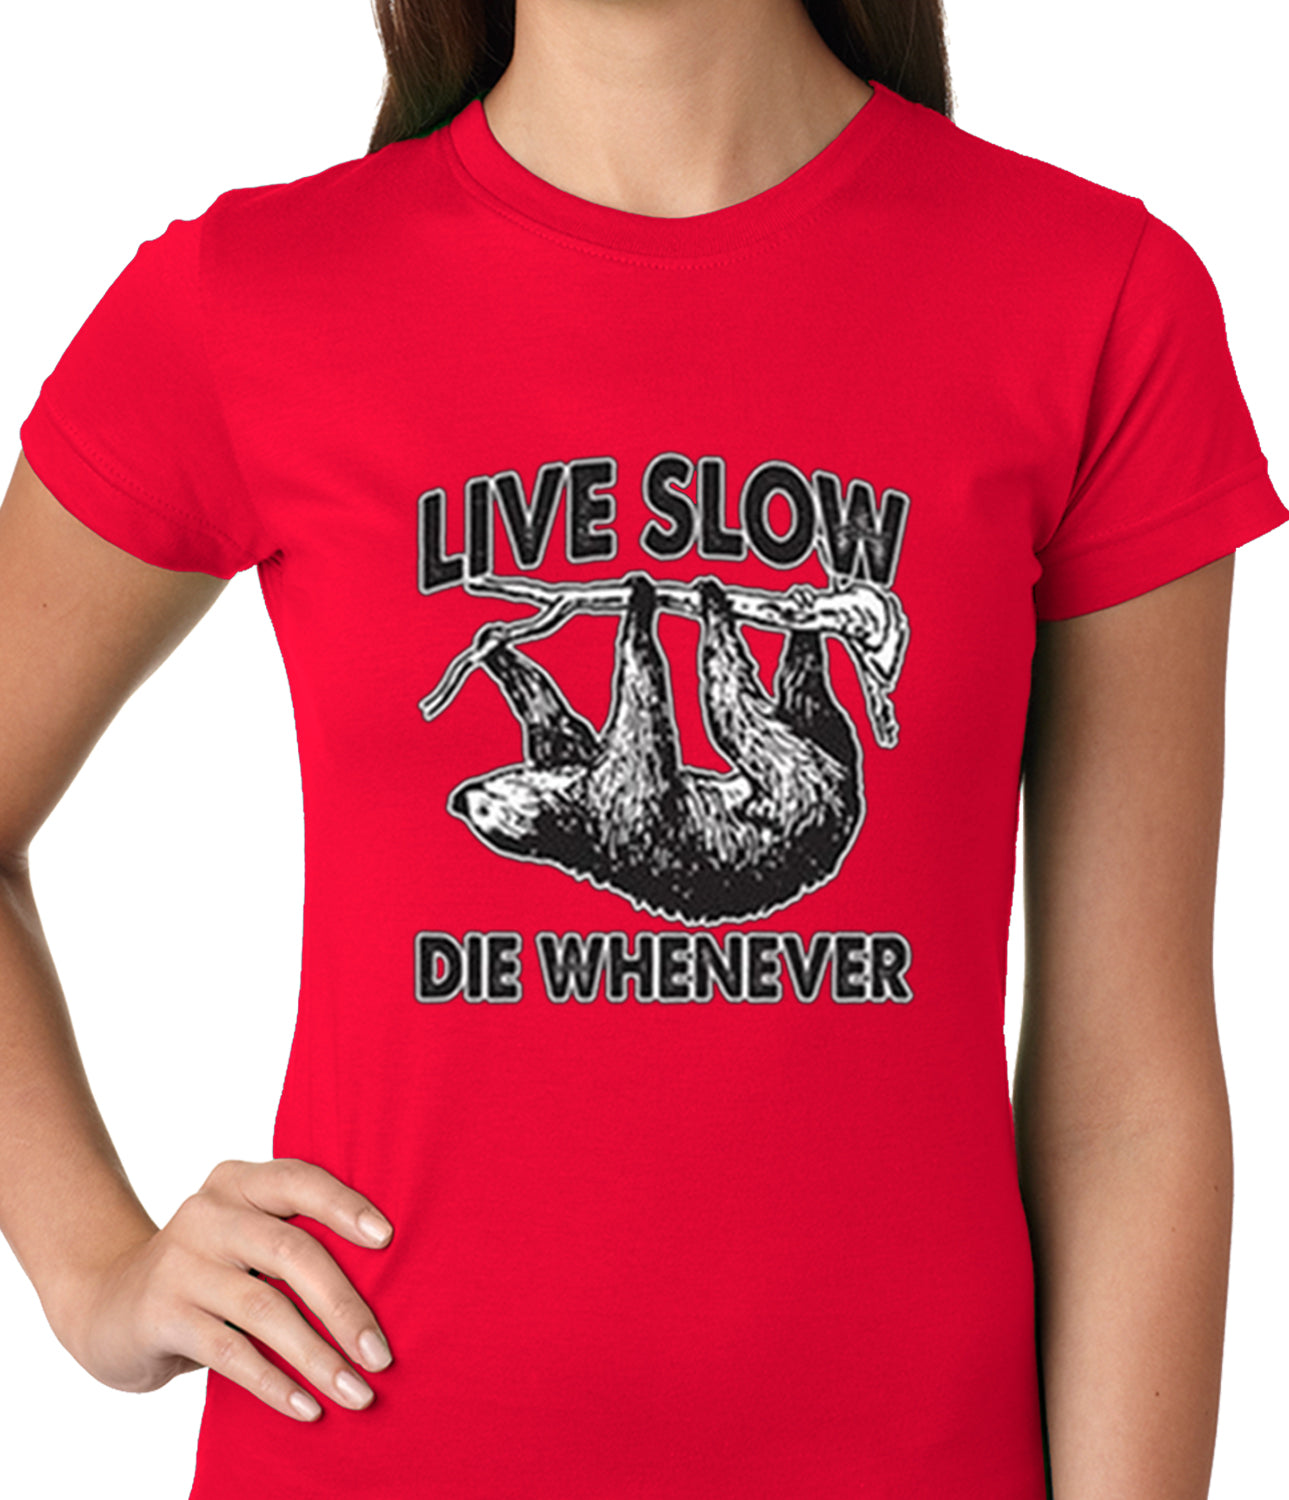 Live Slow, Die Whenever Girls T-shirt